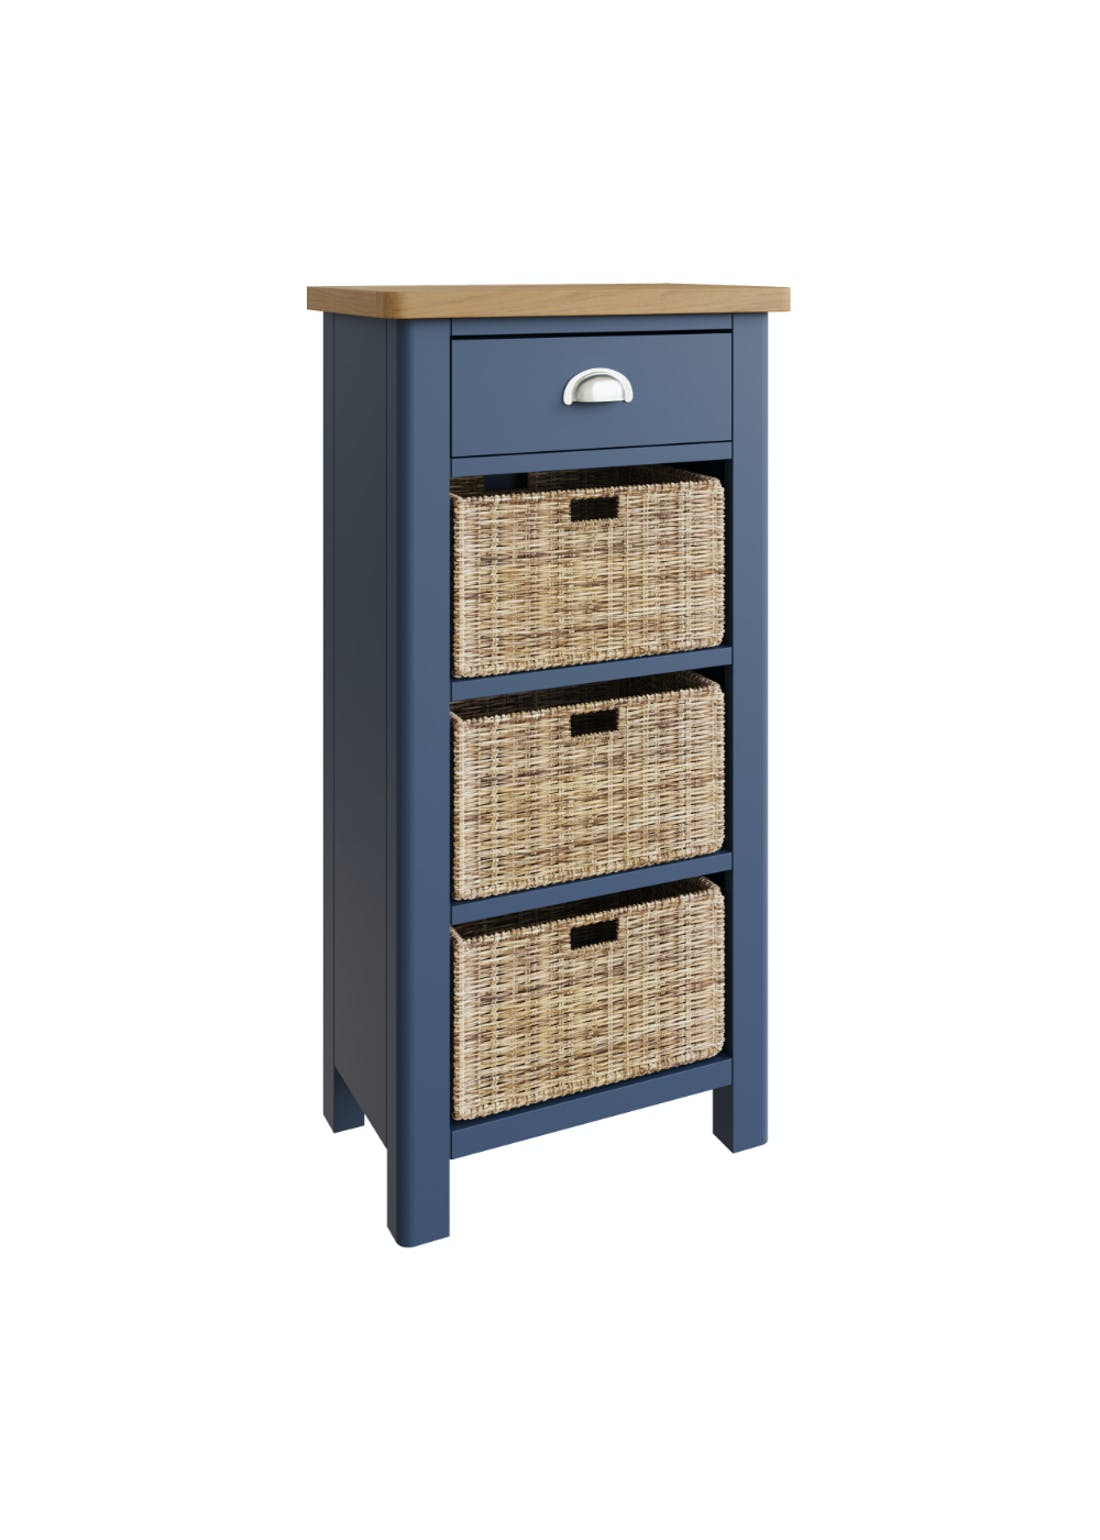 Interiors Direct Reanne 4 Drawer Storage Unit (100cm x 50cm x 30cm)